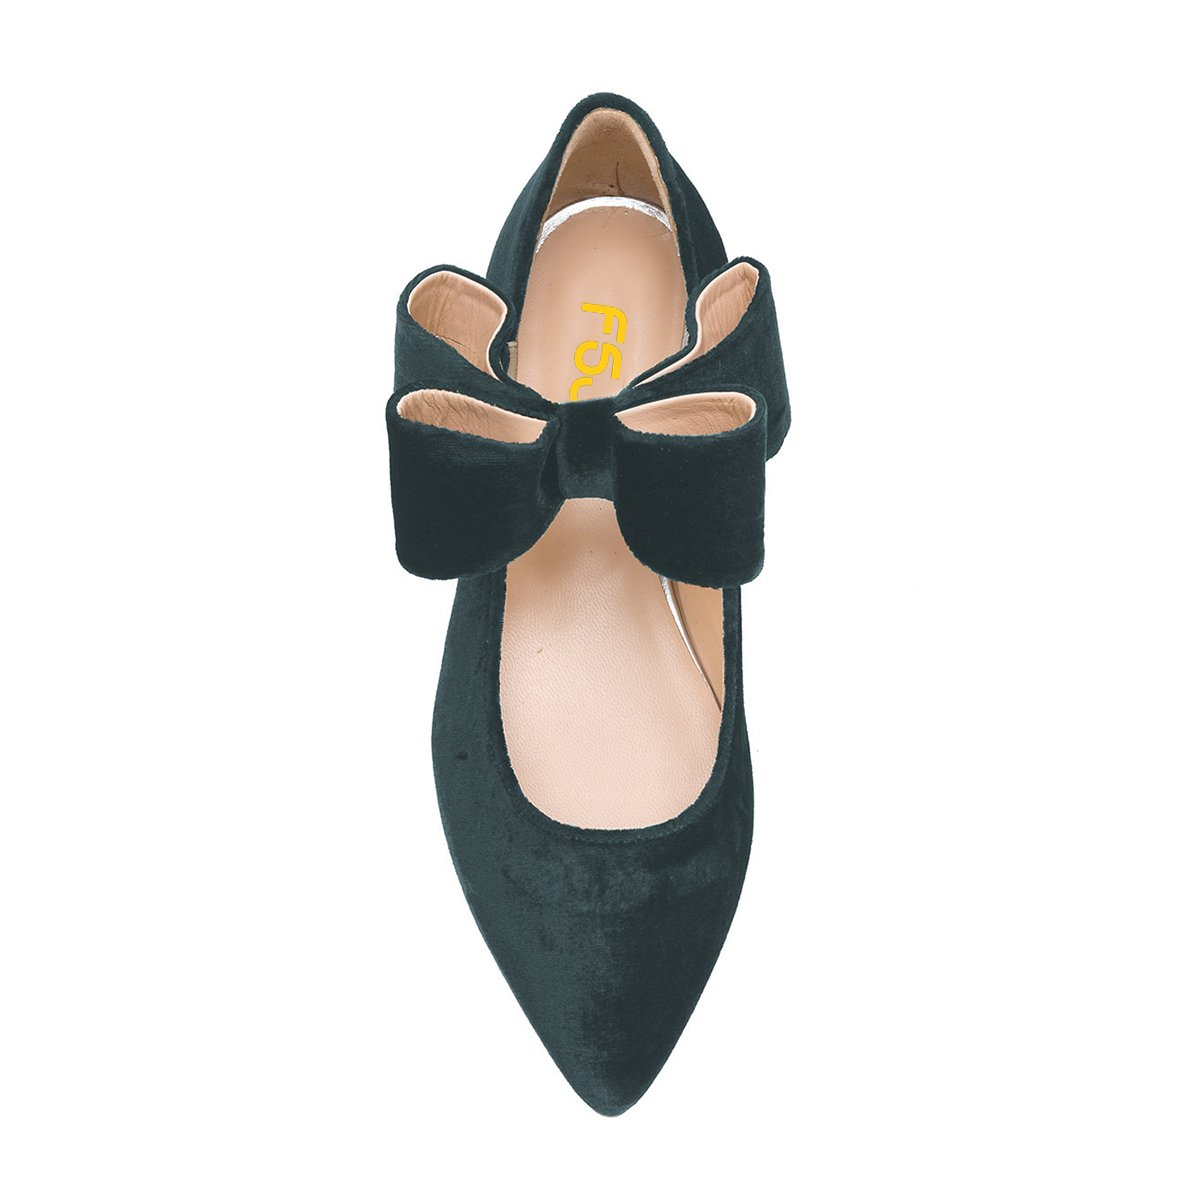 FSJ Women Cute Pointed Toe Flats With Bowknot Velvet Low Heels Slip On Comfy Shoes Size 4-15 US B076QBCCP4 7 B(M) US|Dark Green